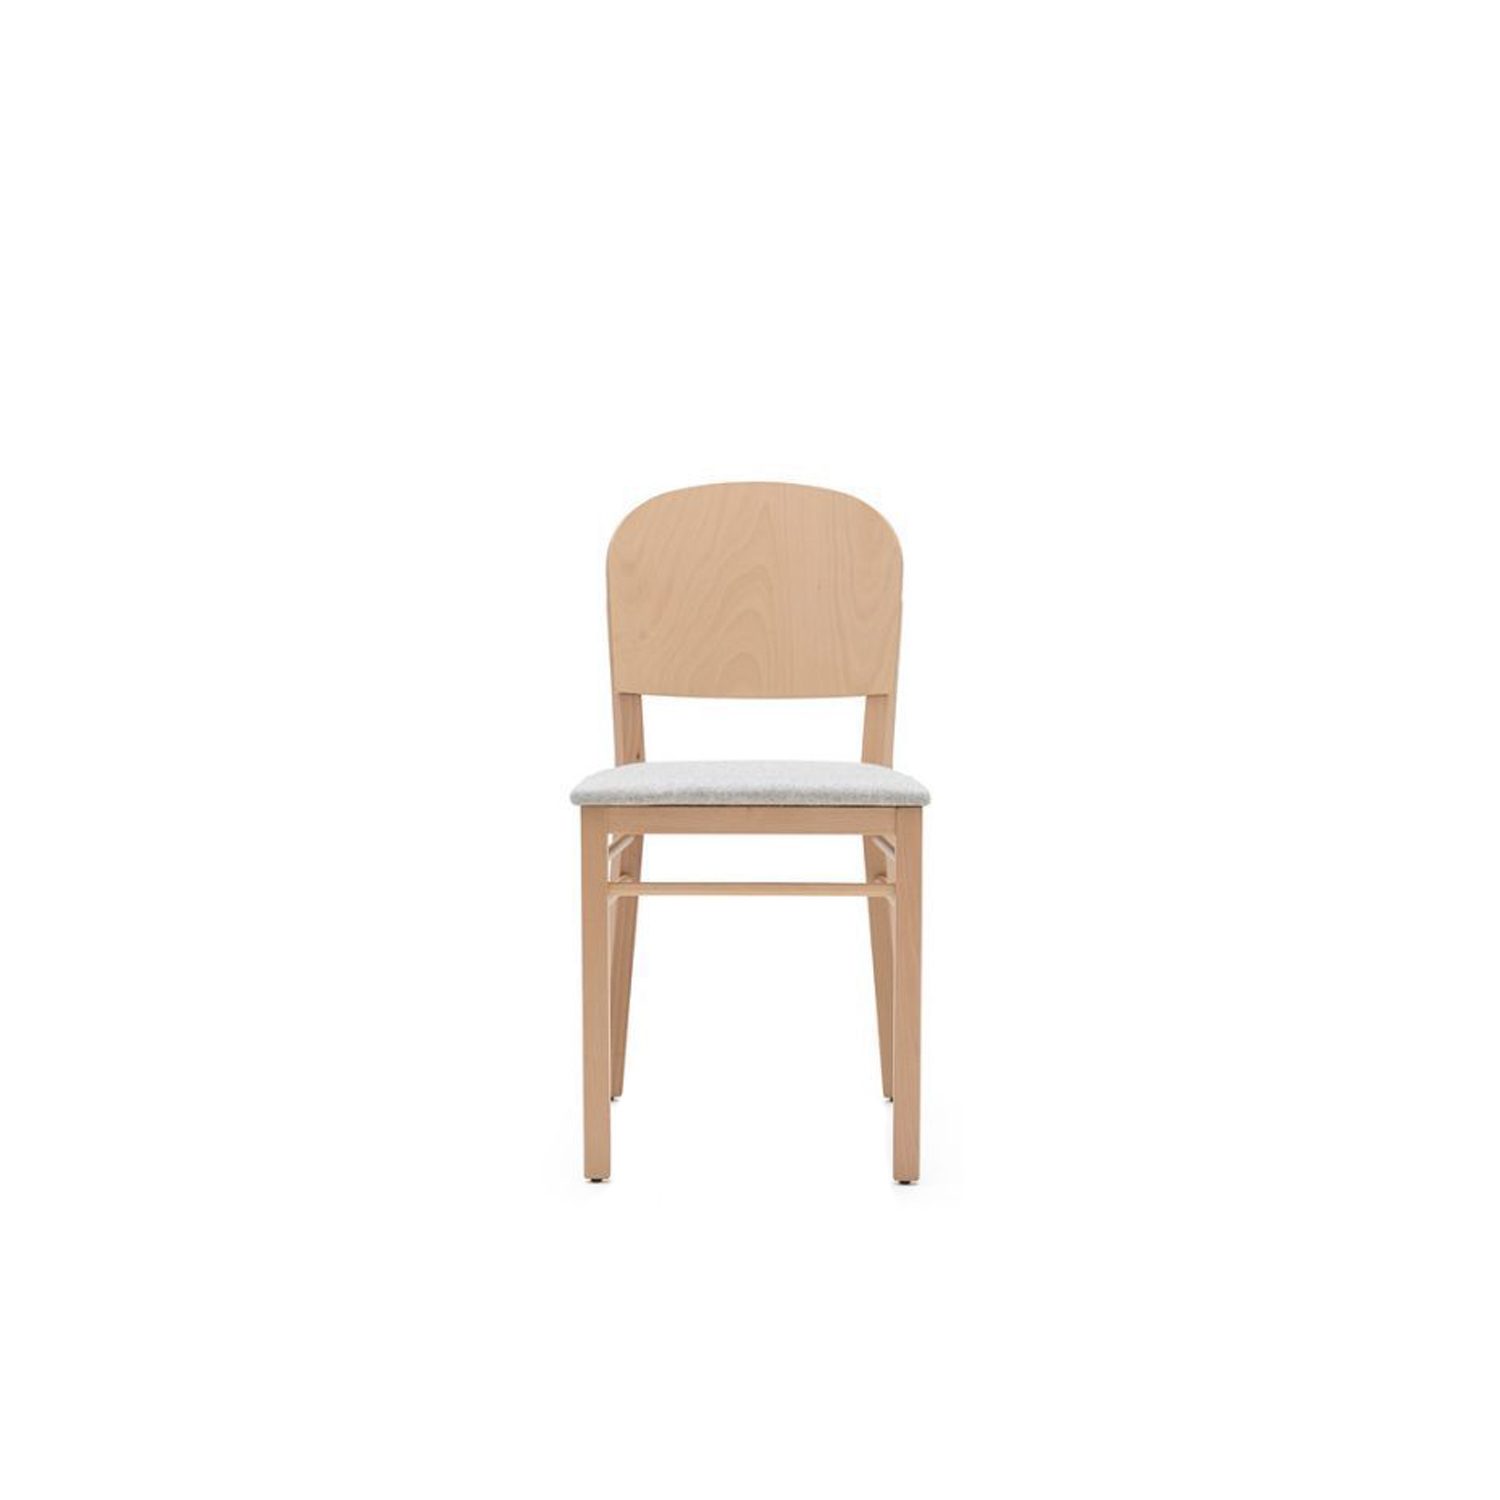 Aloe Upholstered Chair - Offbeat quality. Sweet lines for surprise flashes of beauty. Chair and barstool in solid beech stained or lacquered variant available with upholstered seat.  | Matter of Stuff